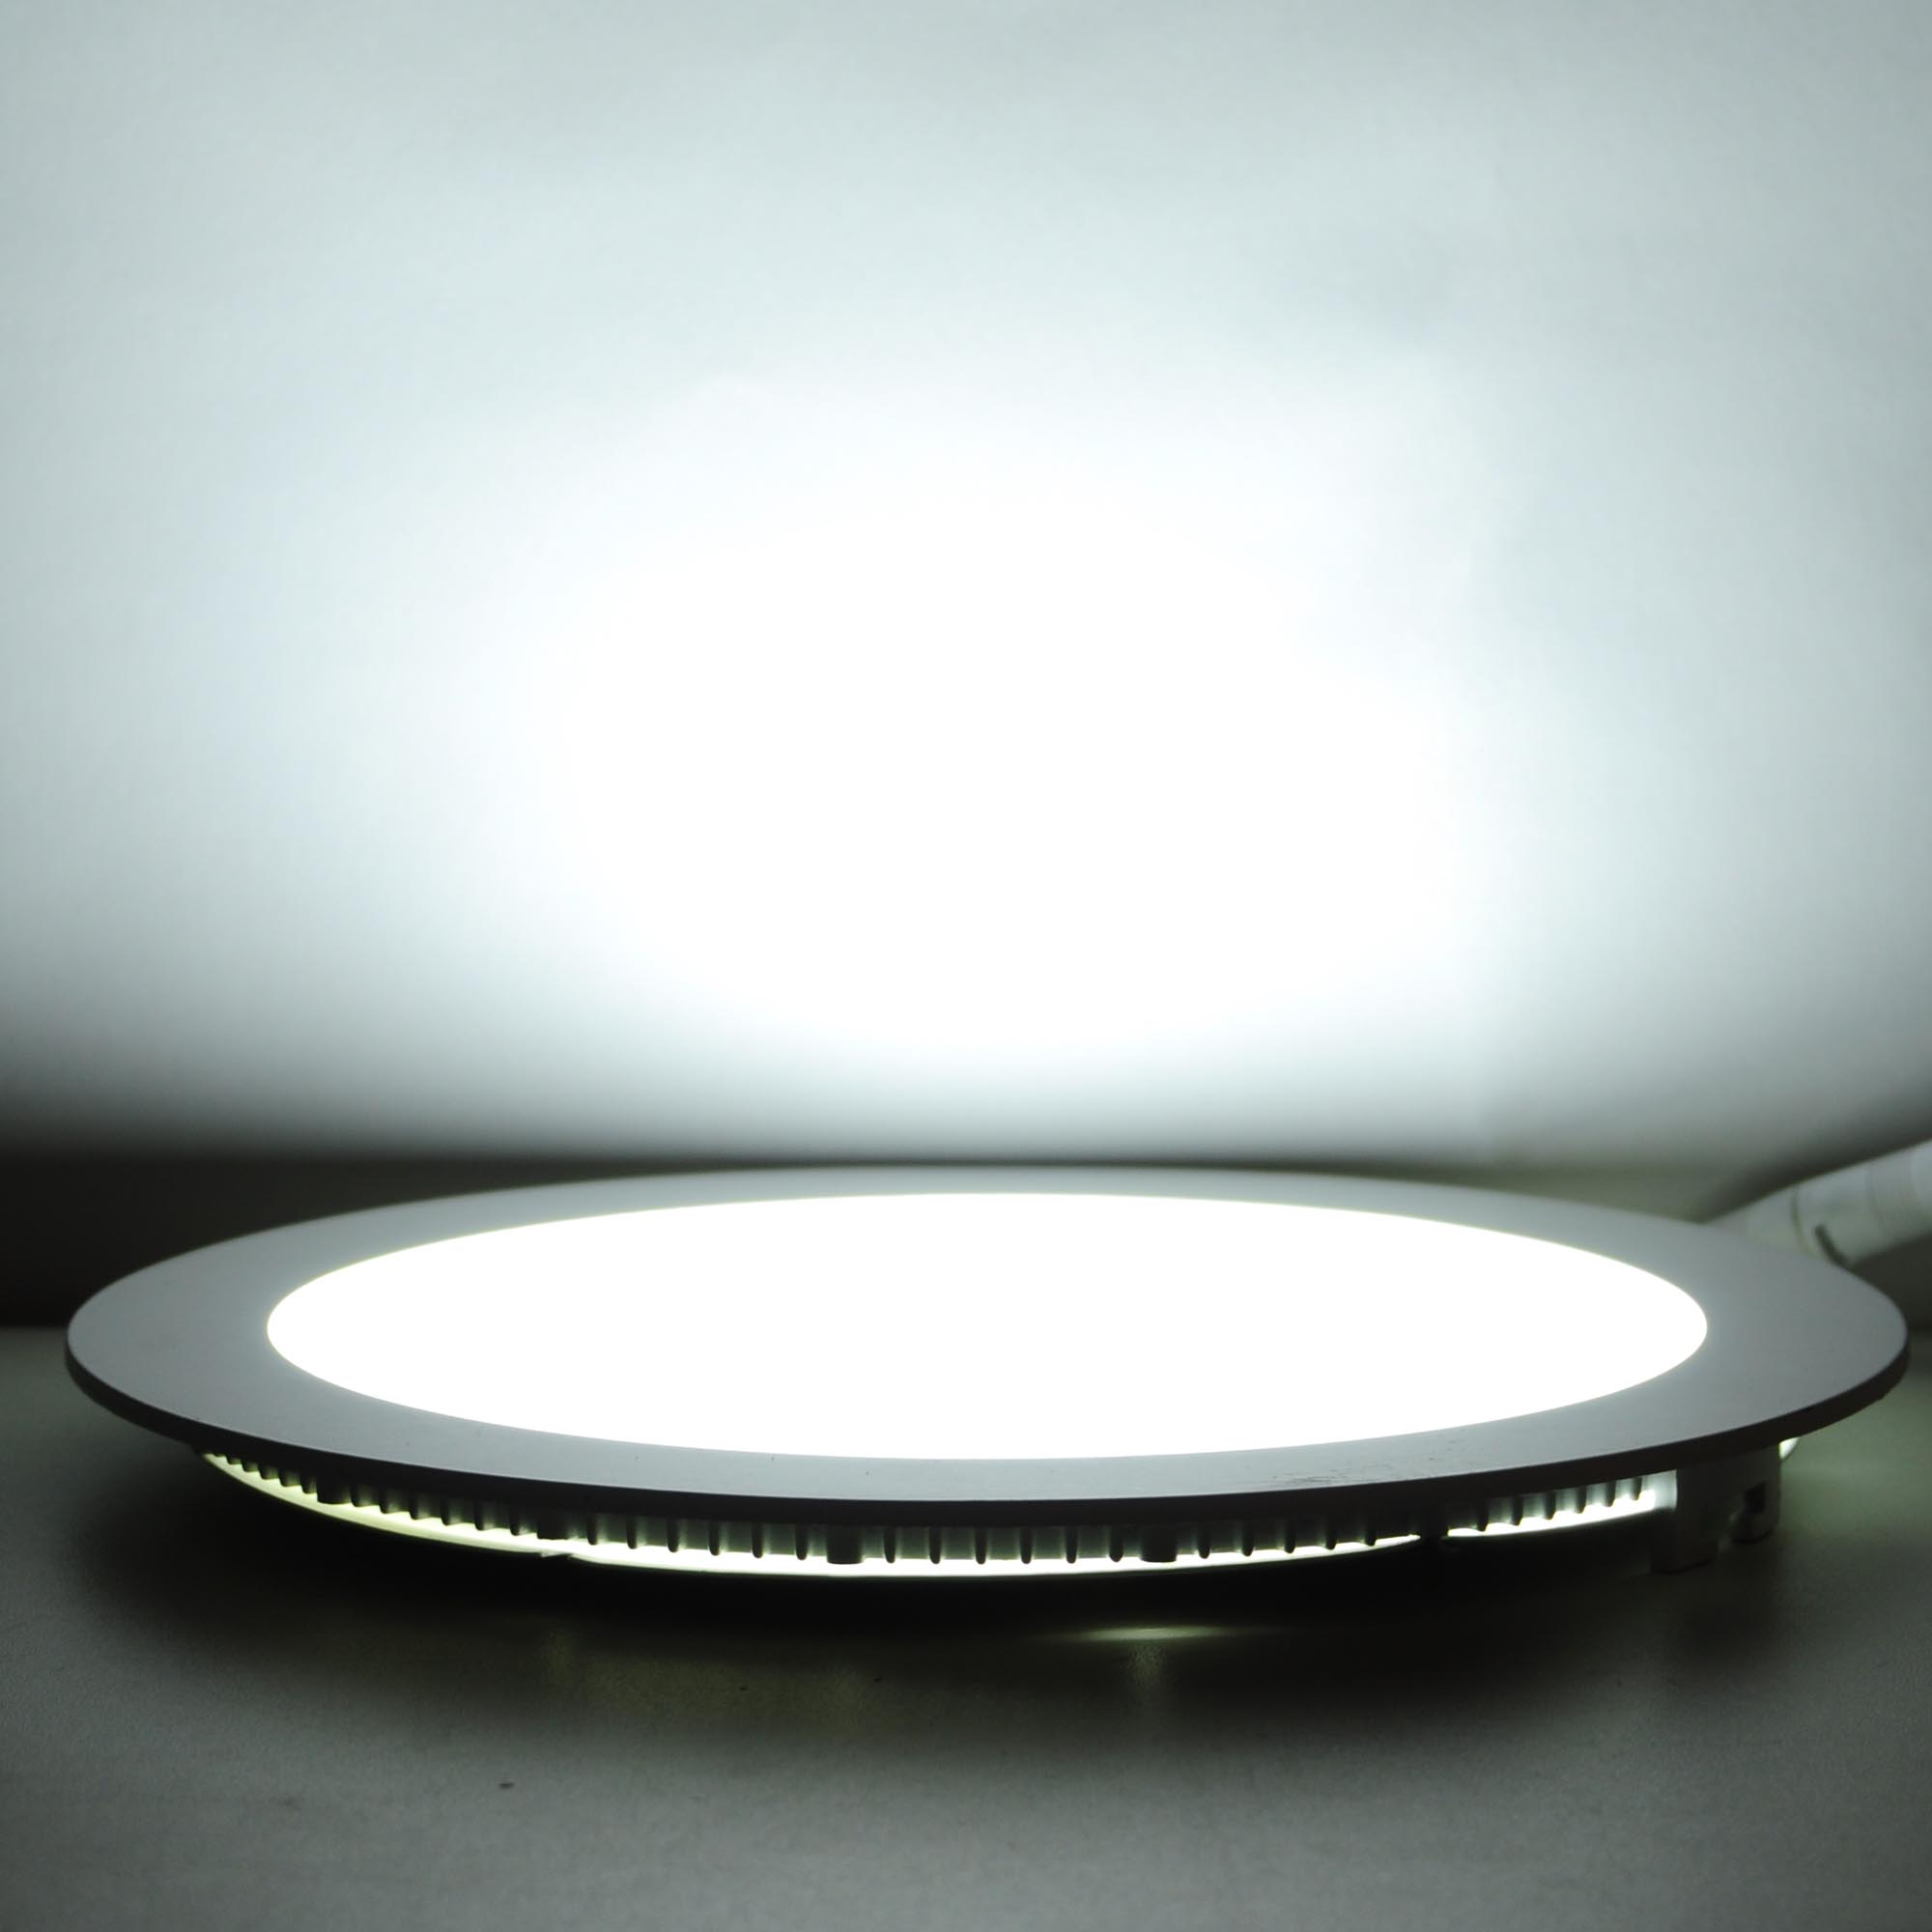 Round Recessed Ceiling Light: 9/12/18W LED Round Recessed Ceiling Flat Panel Down Light